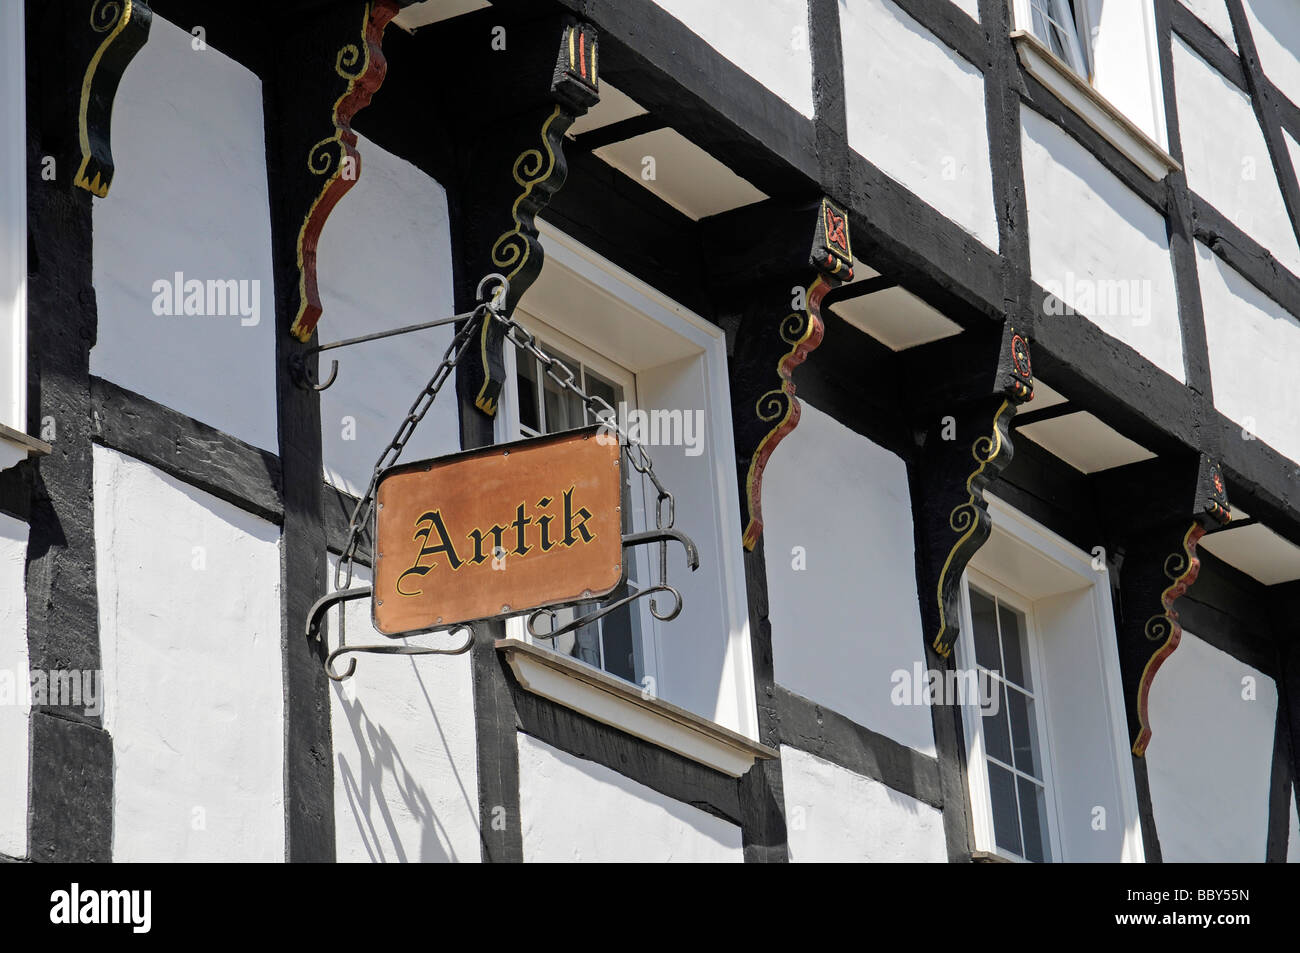 Wrought iron sign, Antik, half-timbered houses, historic town, Hattingen, North Rhine-Westphalia, Germany, Europe - Stock Image